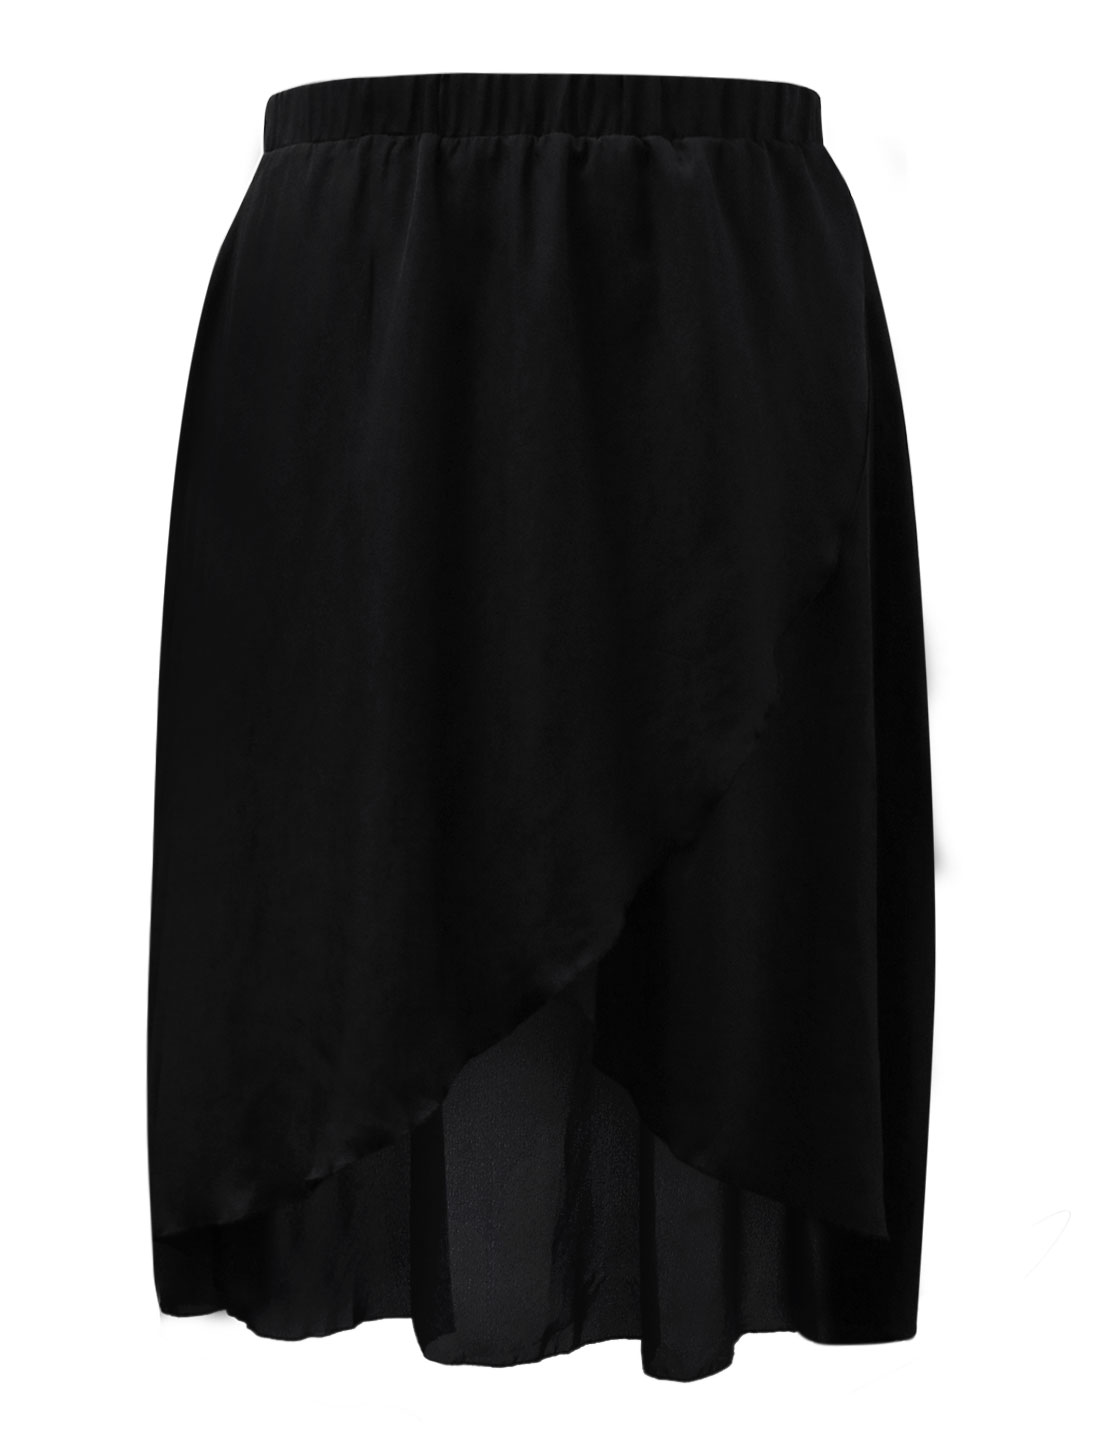 Women Elasticized Waist Partially Lined Plus Size Asymmetrical Skirt Black 2X